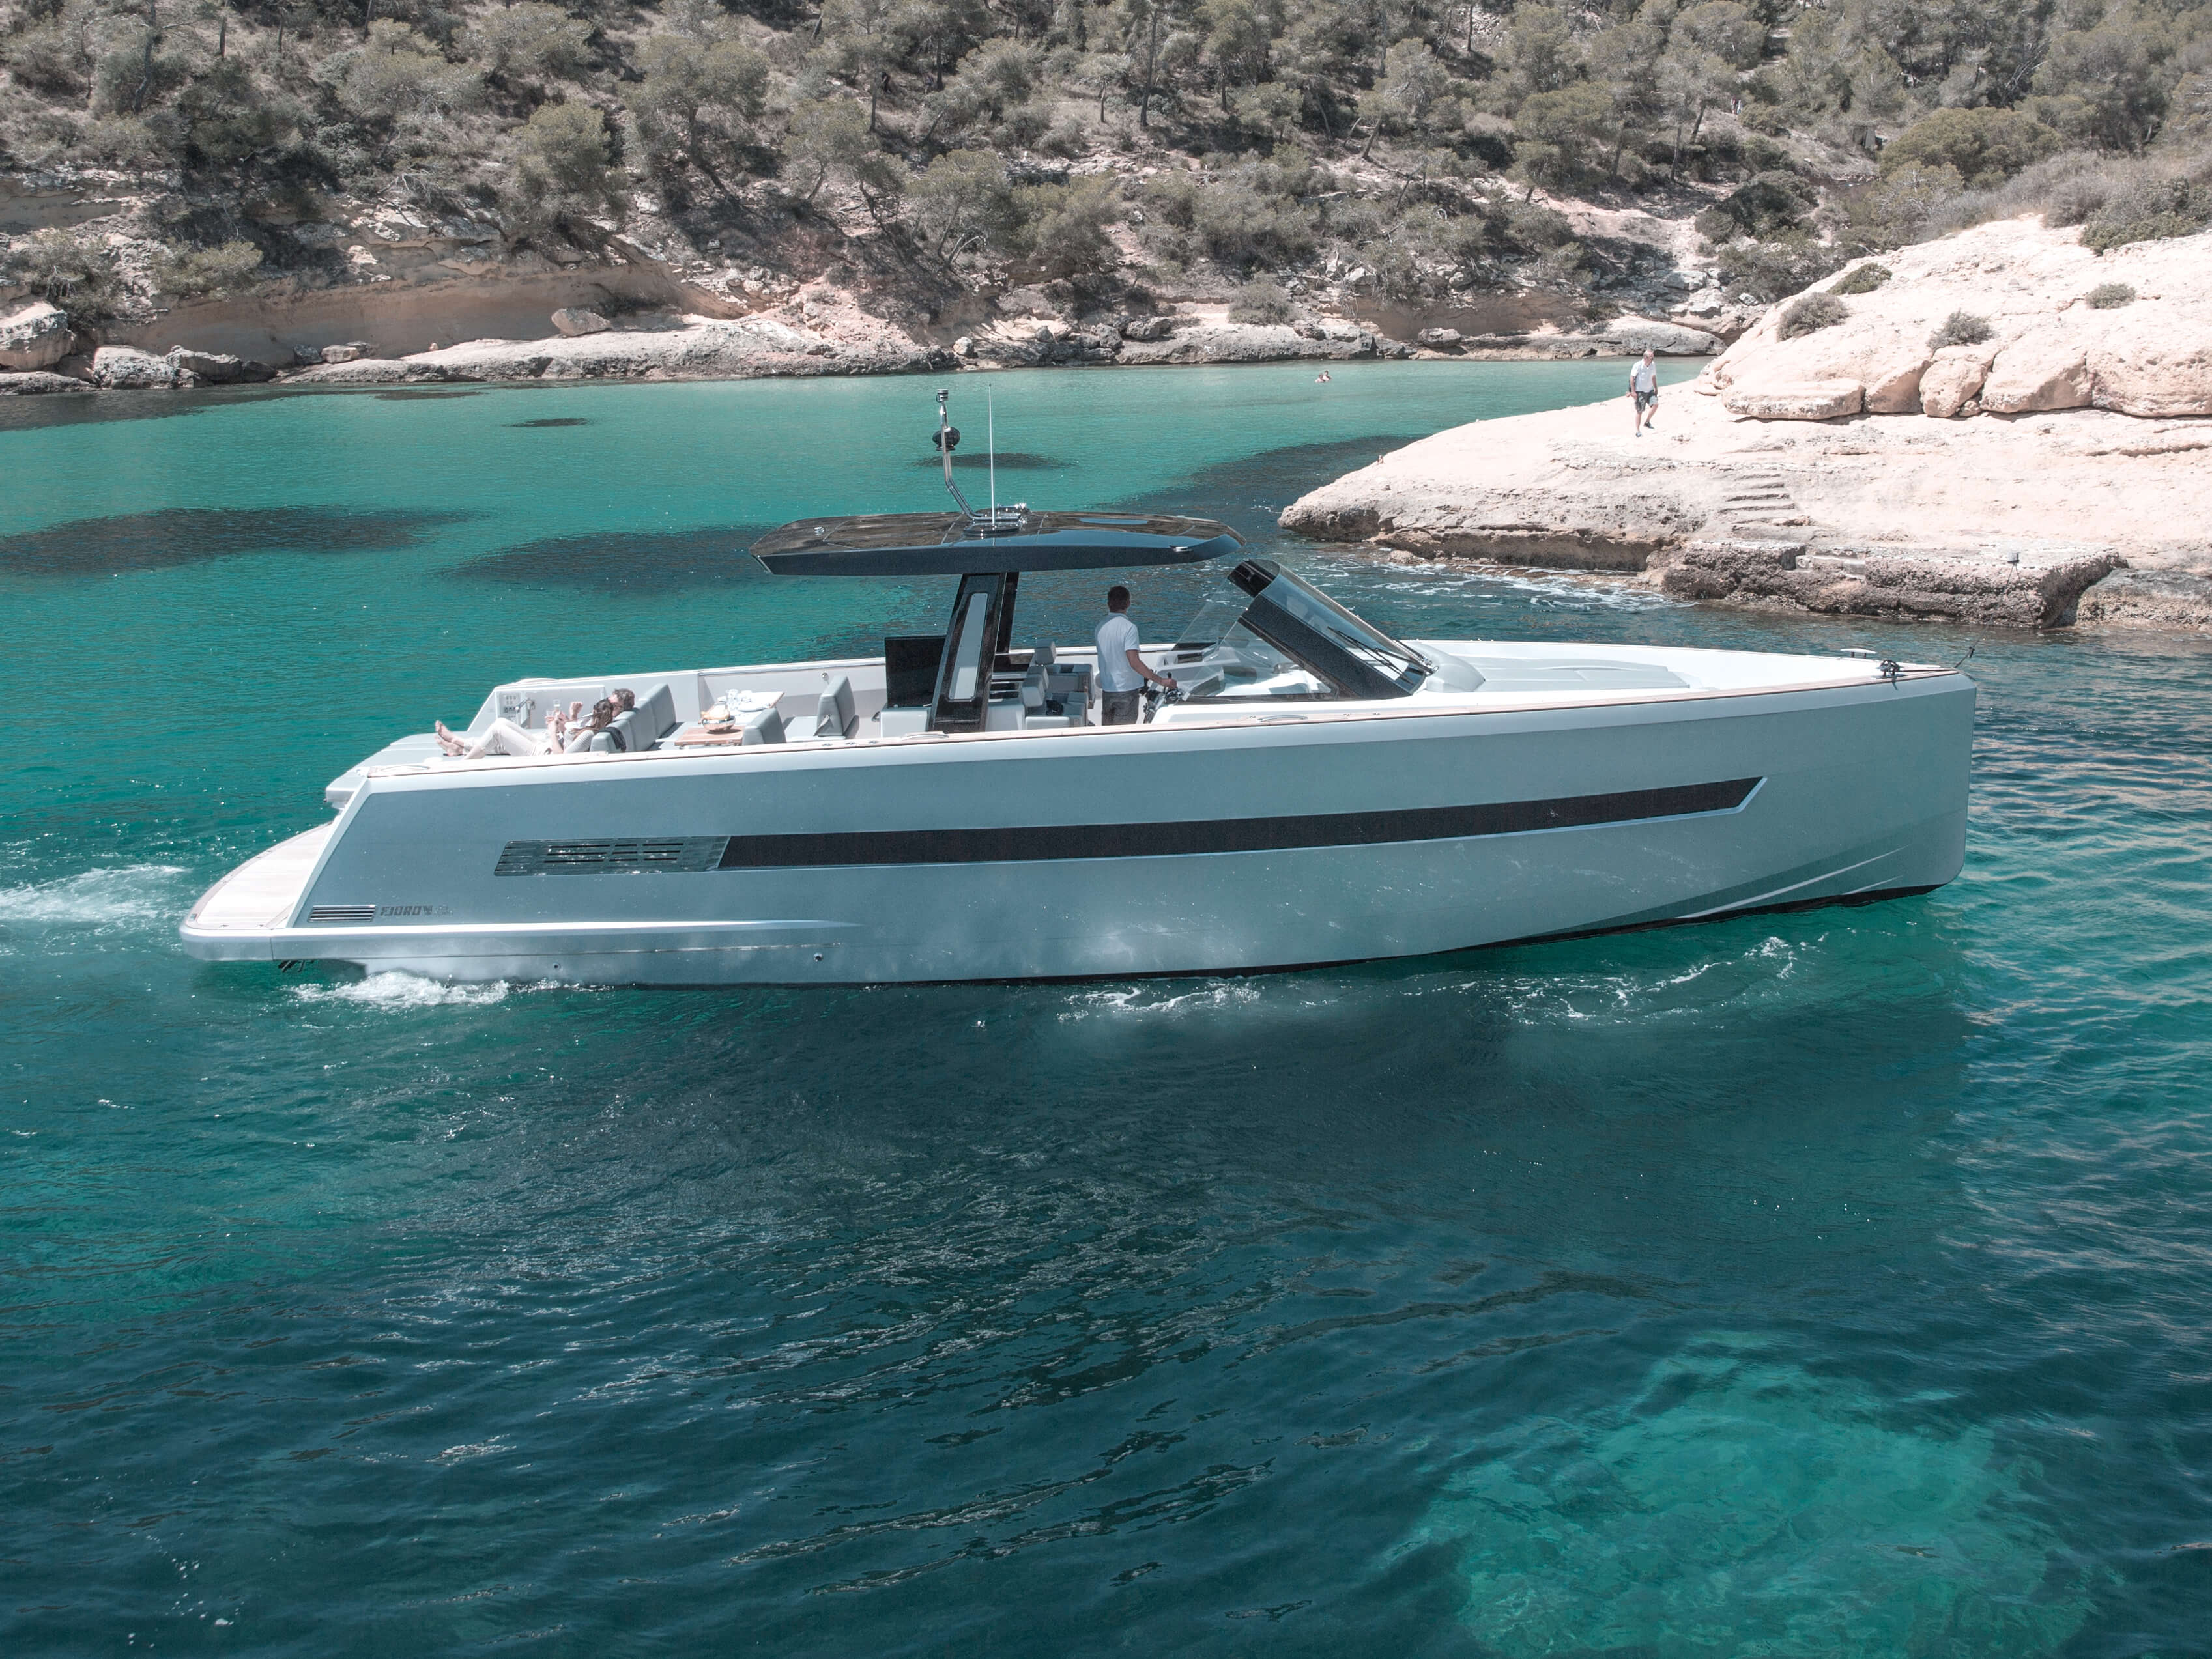 Fjord 48 open Exterior ride | painted hull, T-top with skylights, bathing platform with teak and hydraulic lift, aft sunbed | Fjord